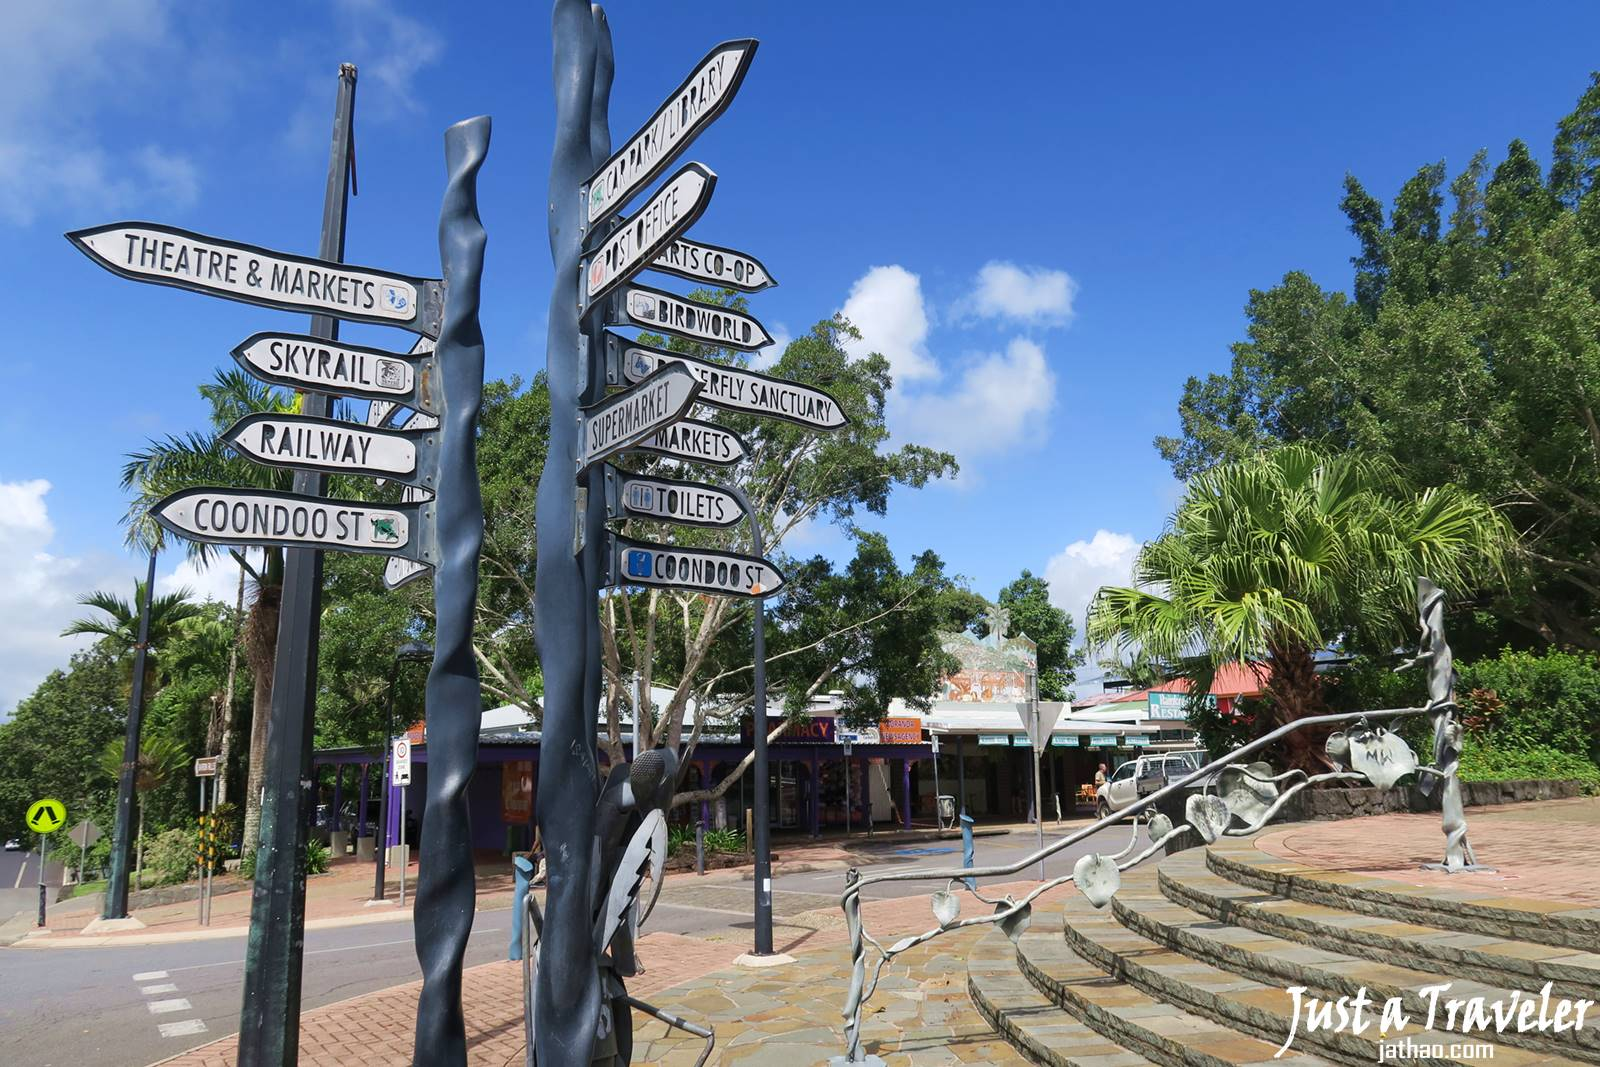 凱恩斯-庫蘭達-景點-市集-自由行-旅遊-澳洲-Cairns-Kuranda-Market-Travel-Tourist-Attraction-Australia